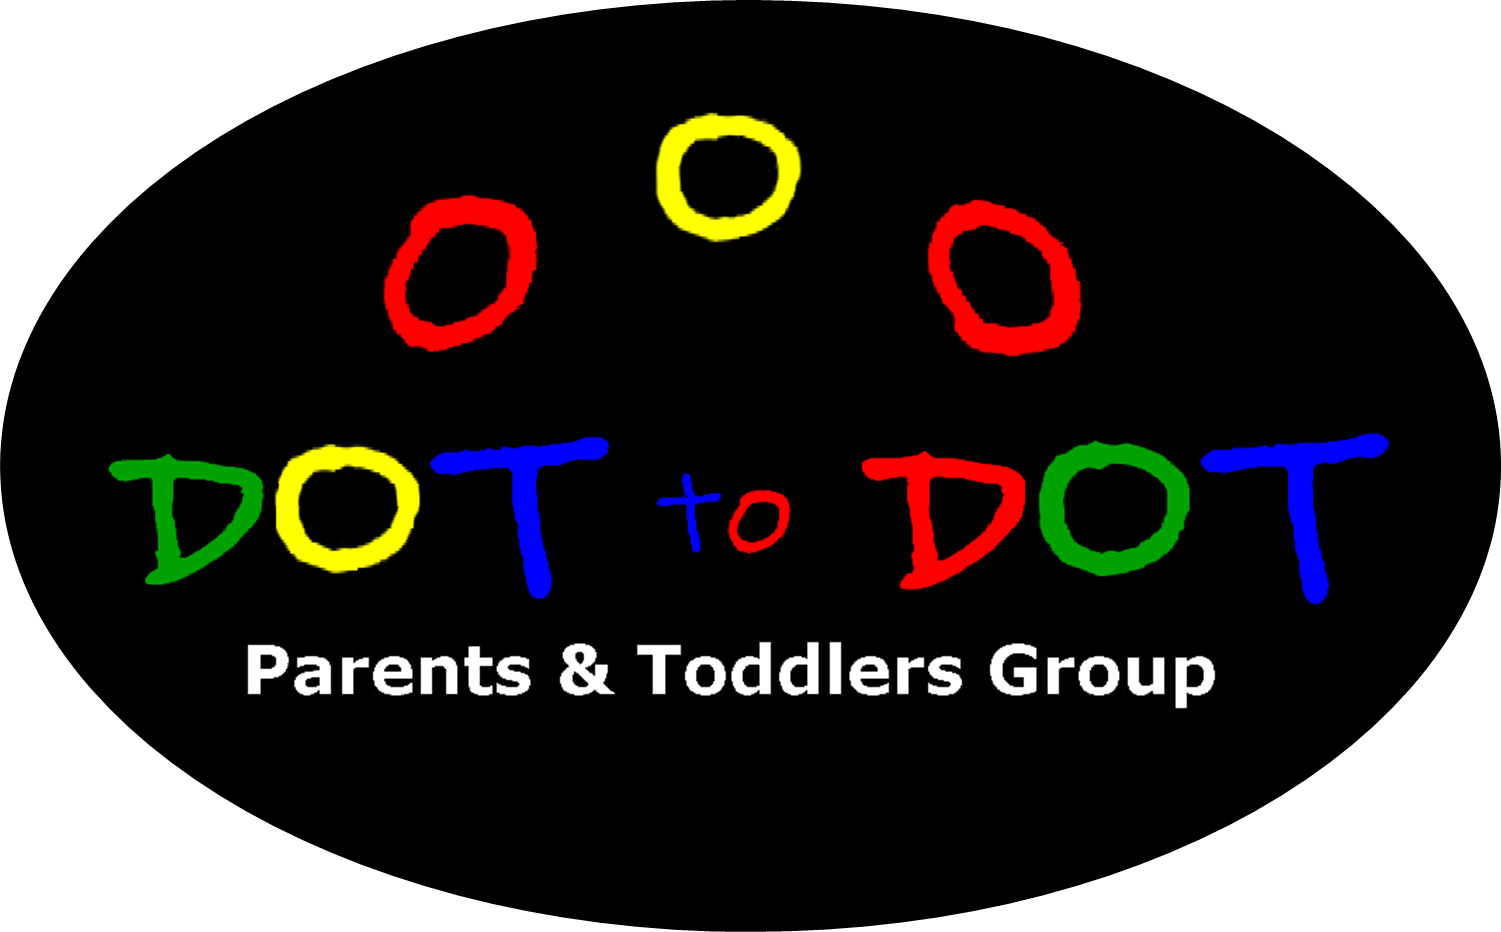 Logo - Dot to Dot - cross - co